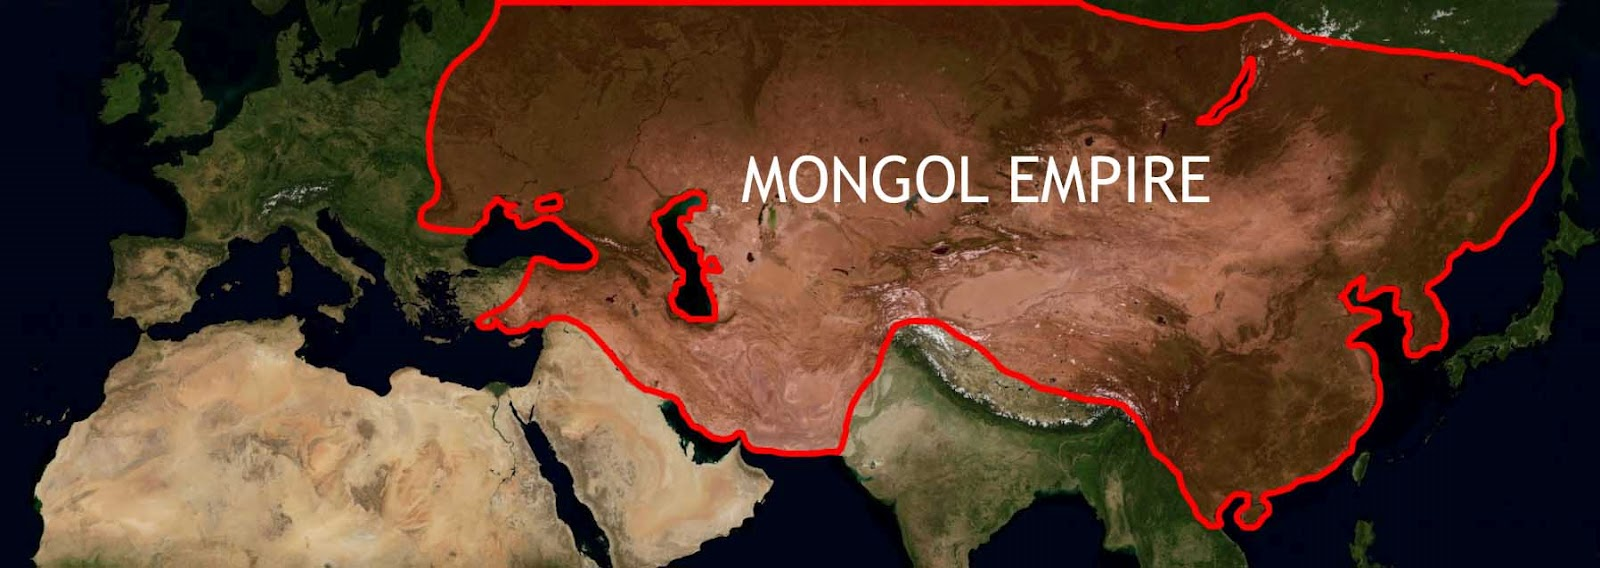 Mongol Empire At Its Peak Choice Image Diagram Writing Sample Ideas And Guide